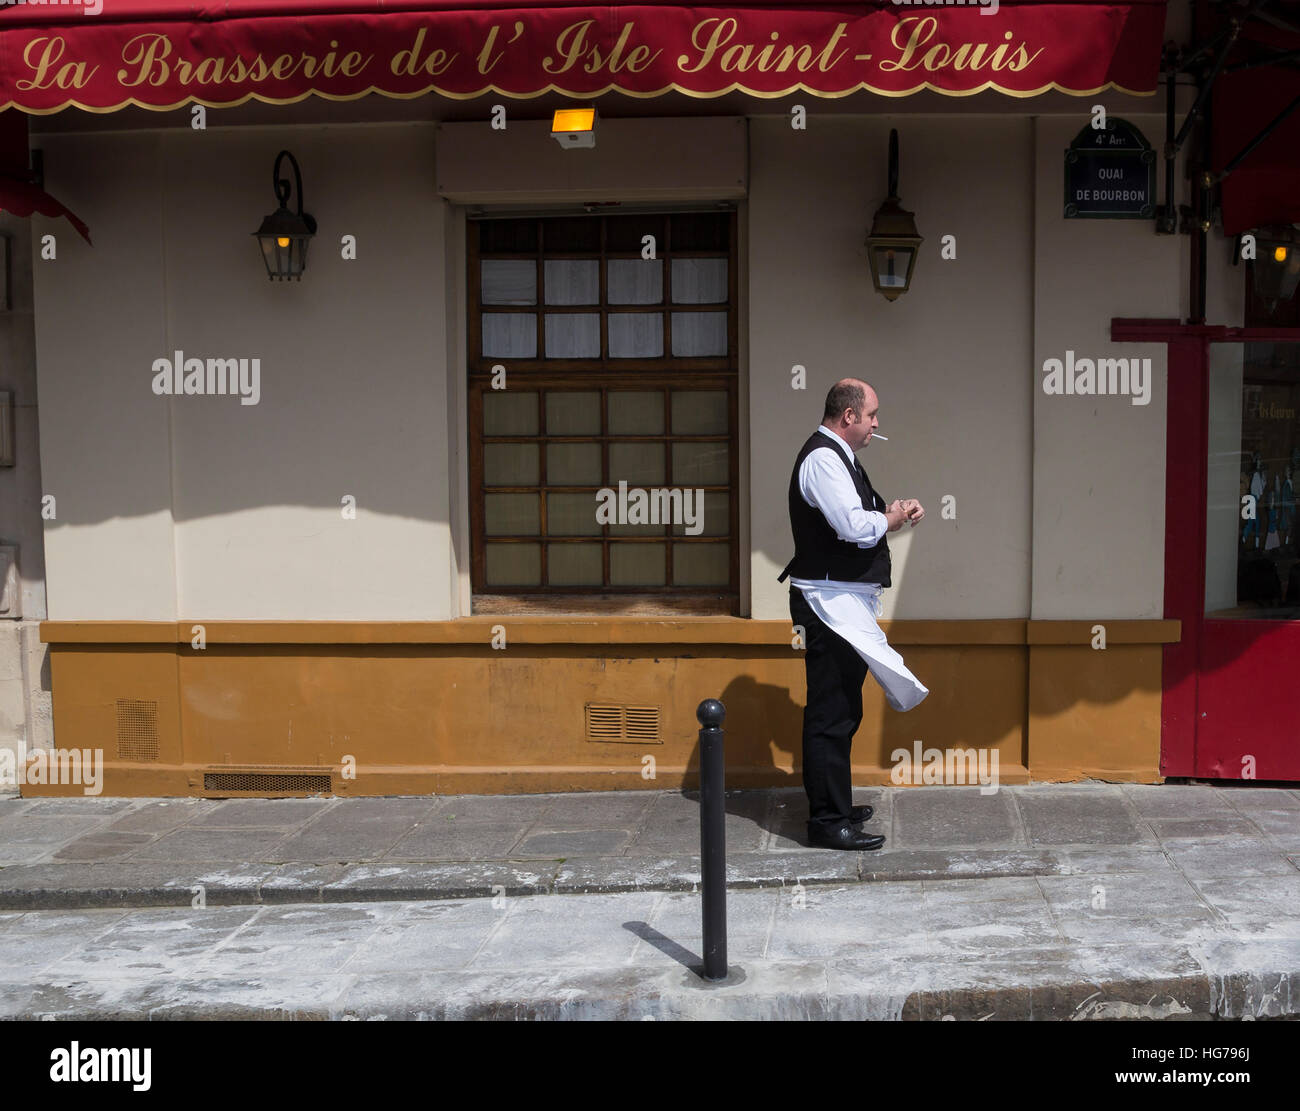 French waiter is lighting a cigarette in front of La Brasserie De L'Isle Saint Louis restaurant in Paris, France - Stock Image